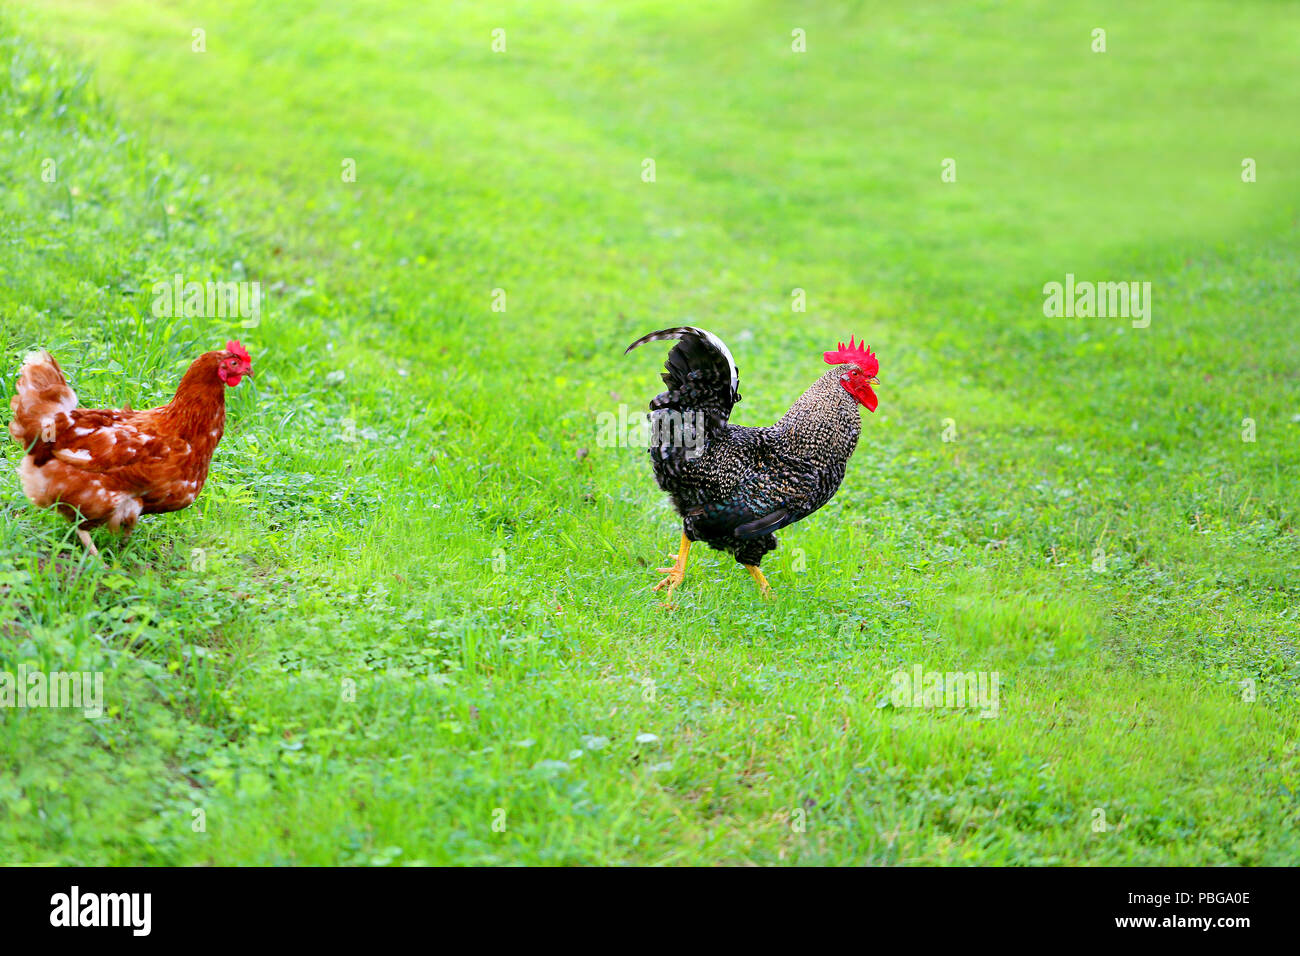 Funny Cock Pics photo of a funny funny cock and chickens on green grass